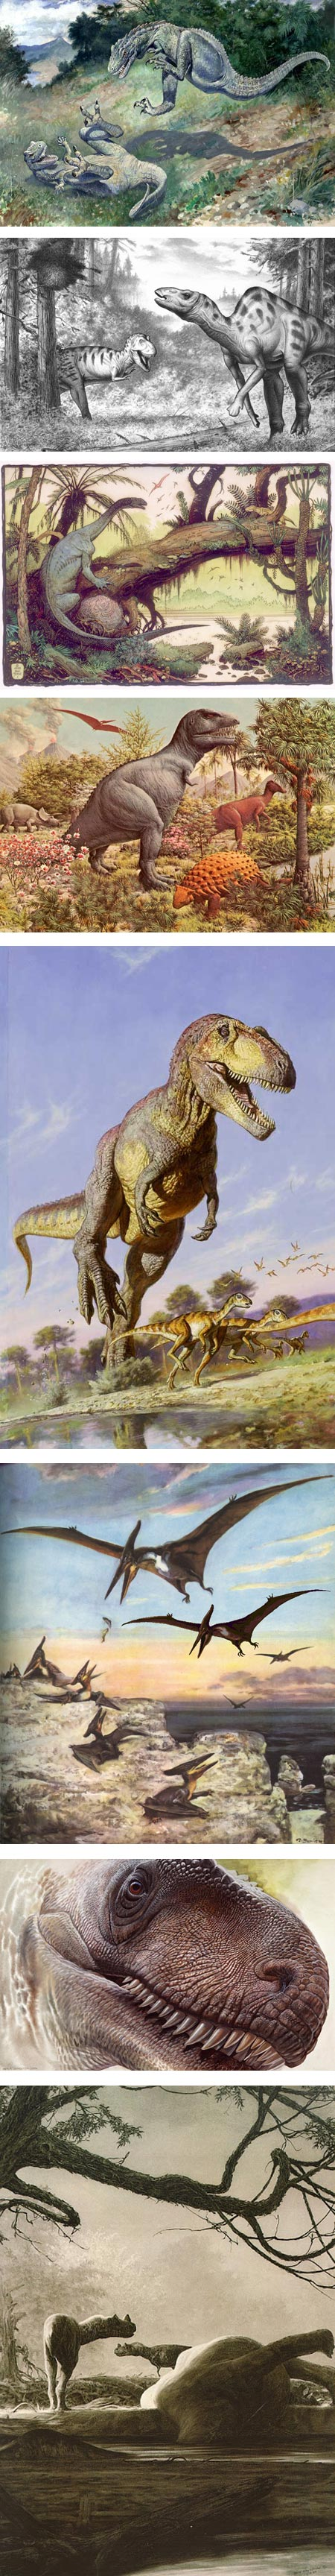 Picturing Dinosaurs on Tor.com: Charles R. Knight, Robert F. Walters, William Stout, Rudolph Zallinger, James Gurney, Zdeněk Burian, Peter Schouten,  Douglas Henderson